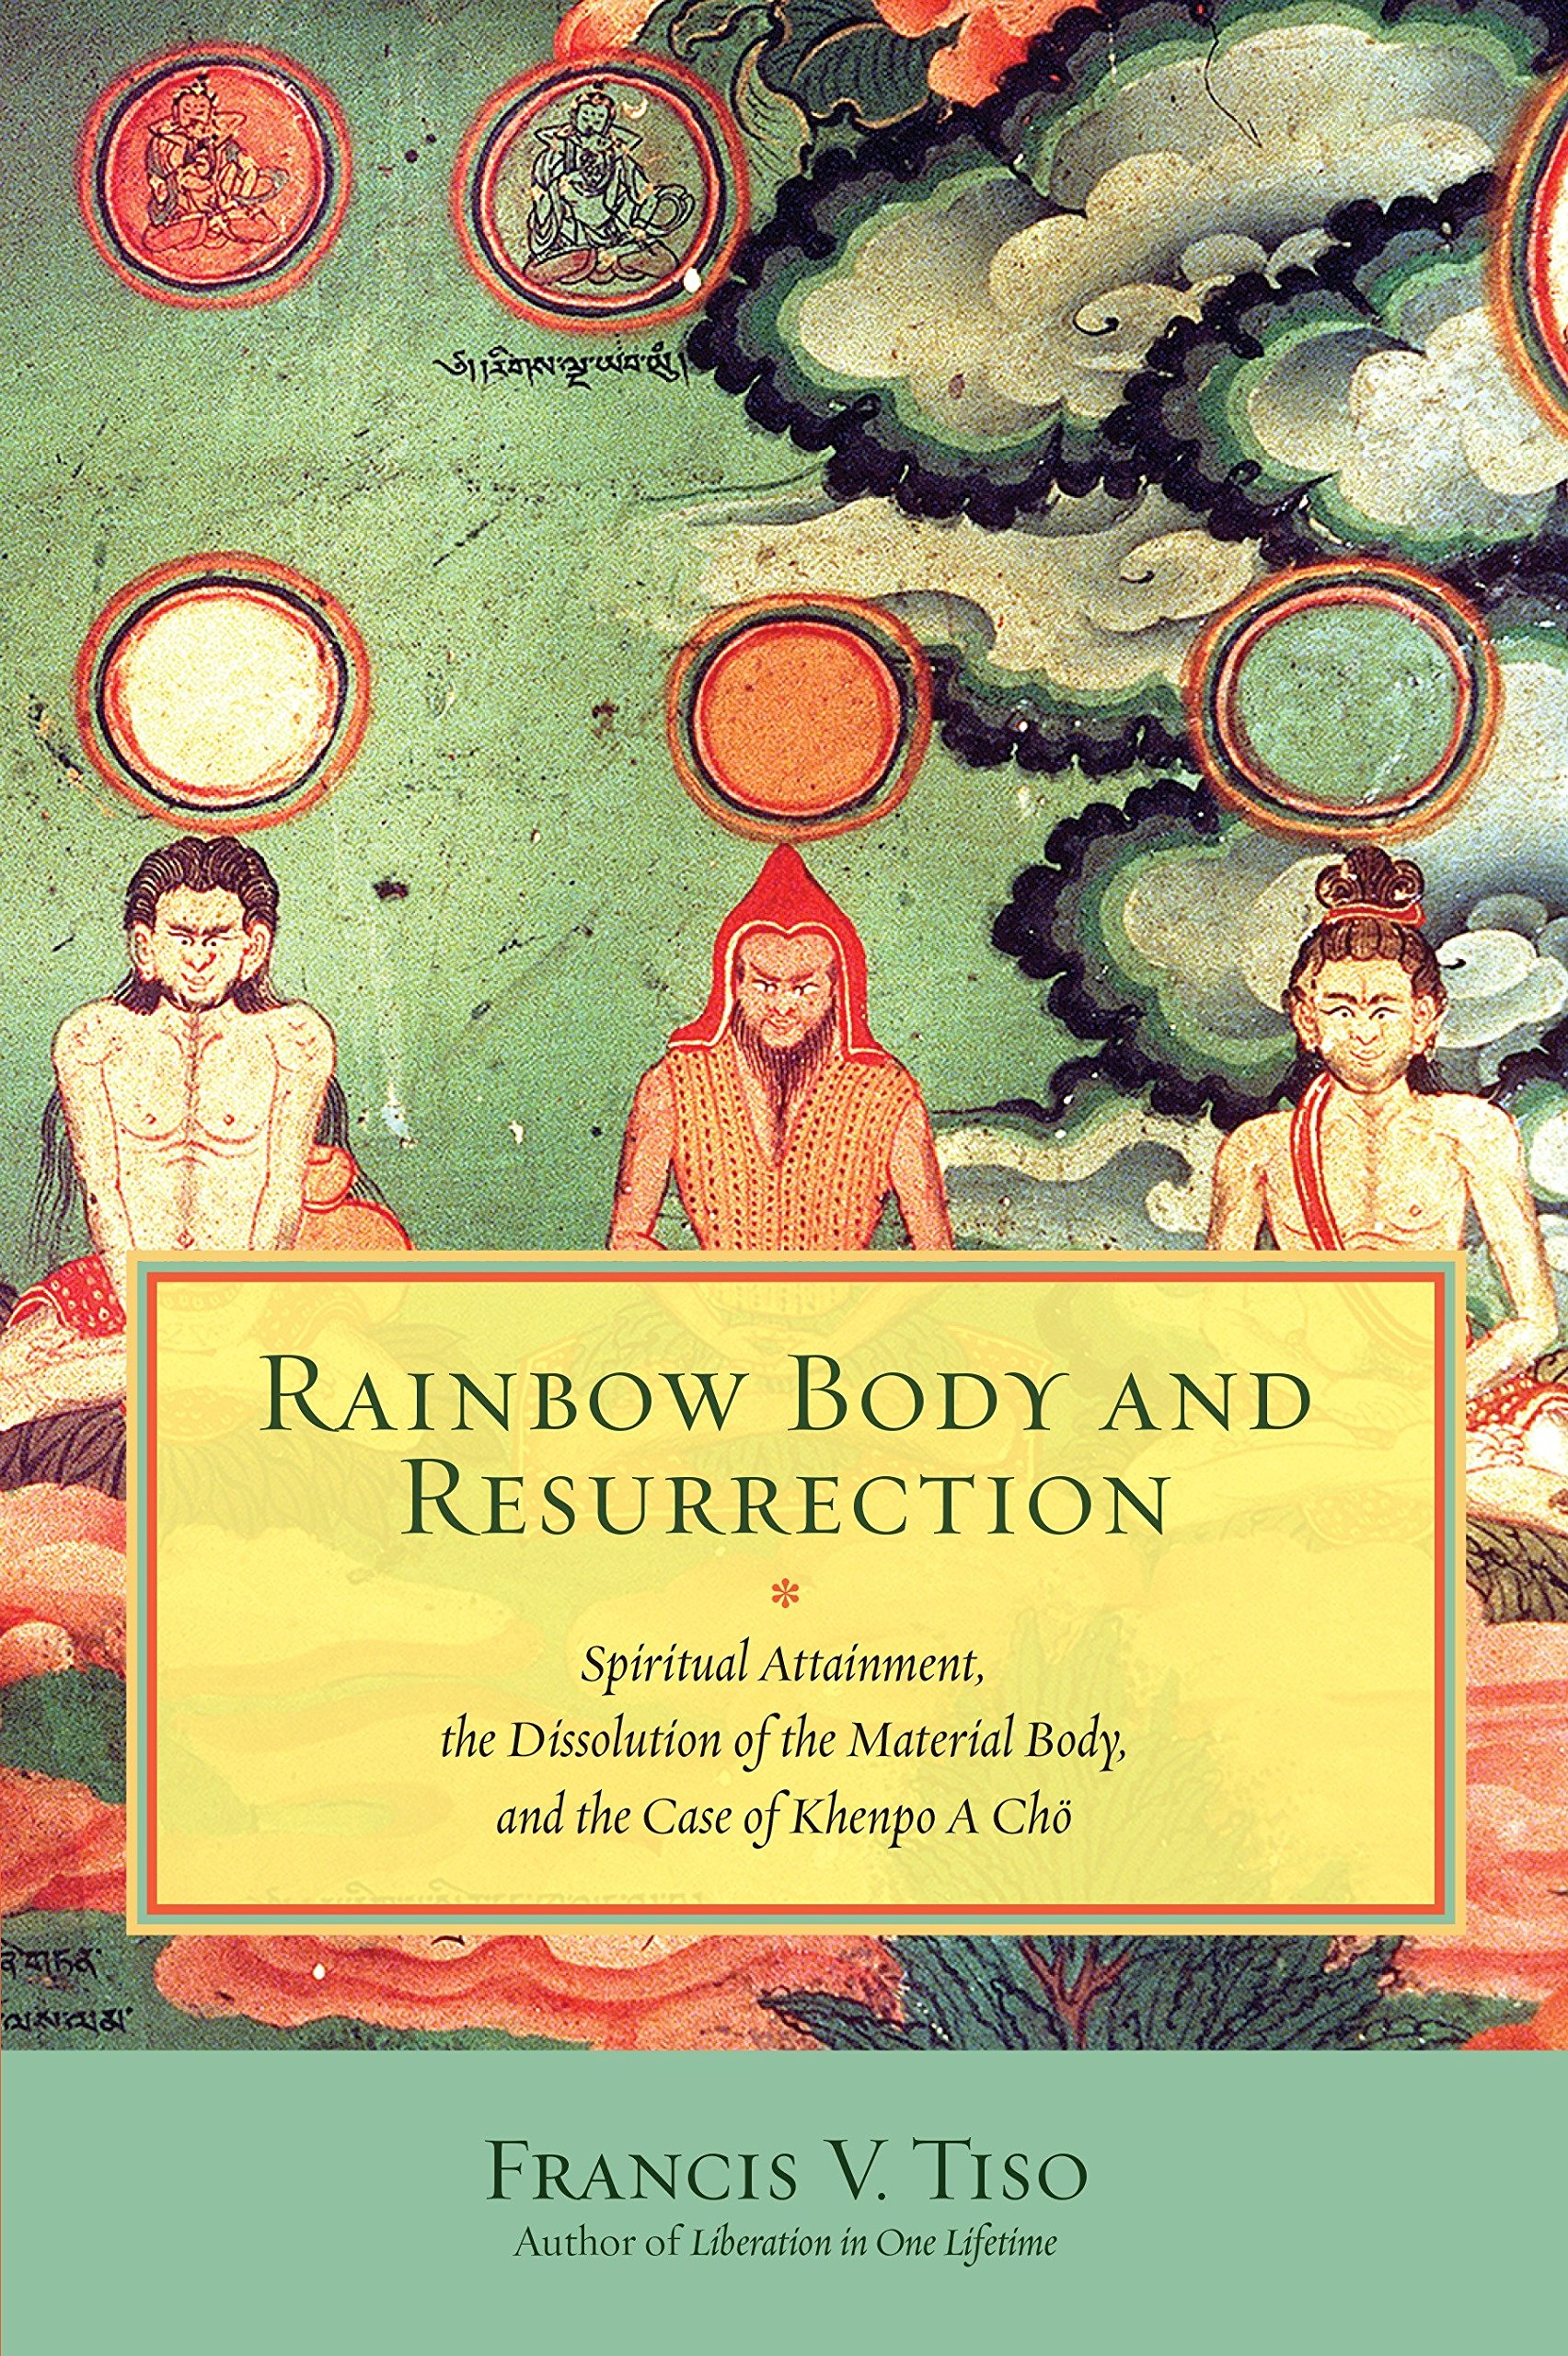 Rainbow Body and Resurrection: Spiritual Attainment, the Dissolution of the Material Body, and the Case of Khenpo A Chö PDF